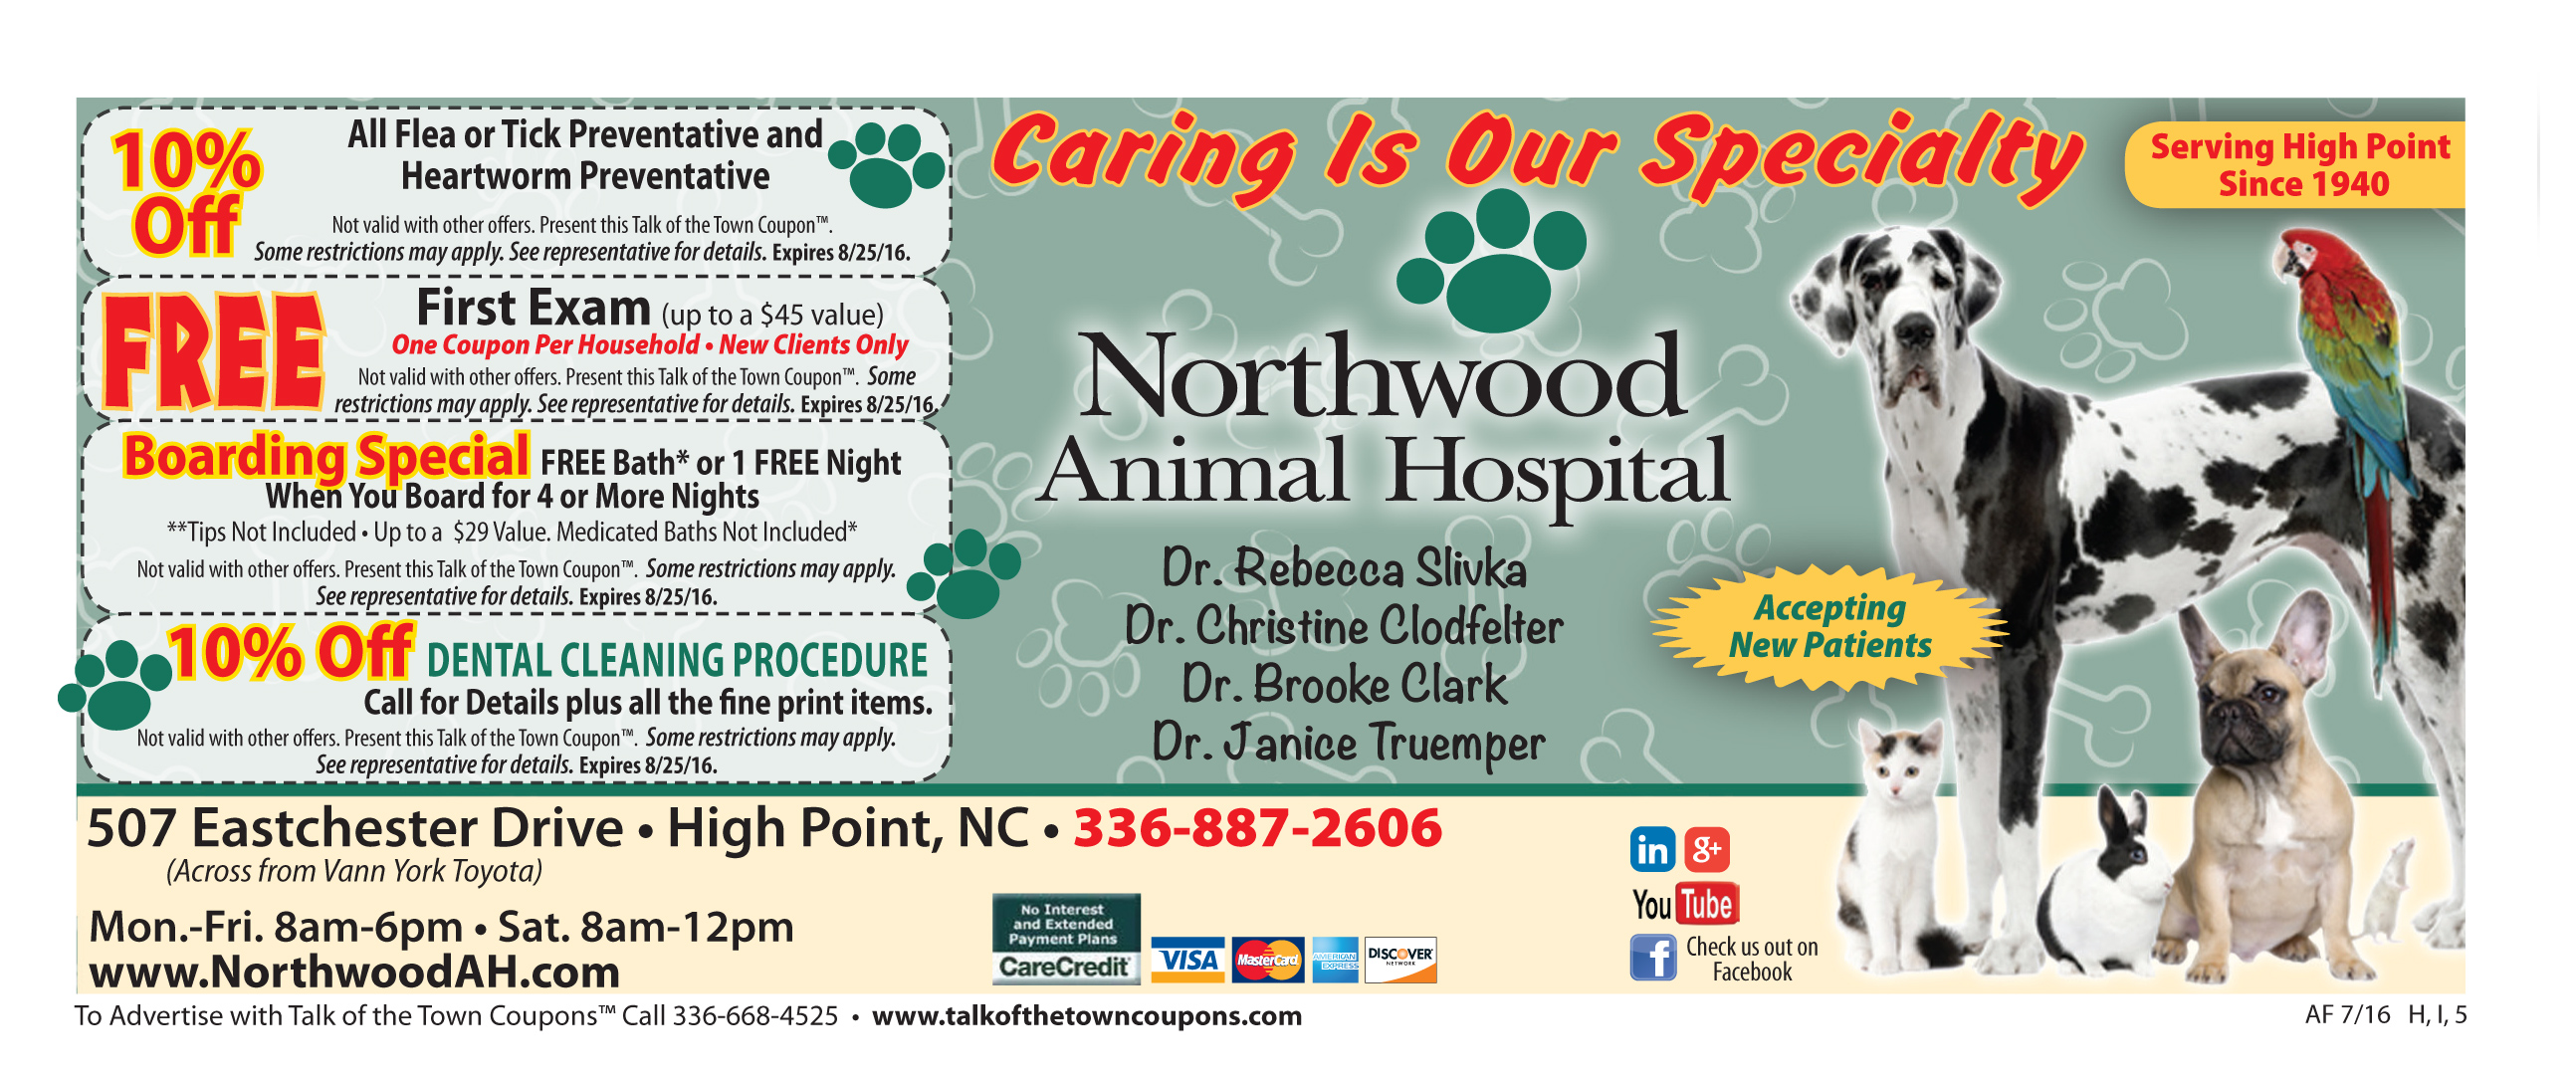 Northwood Animal Hospital Offer